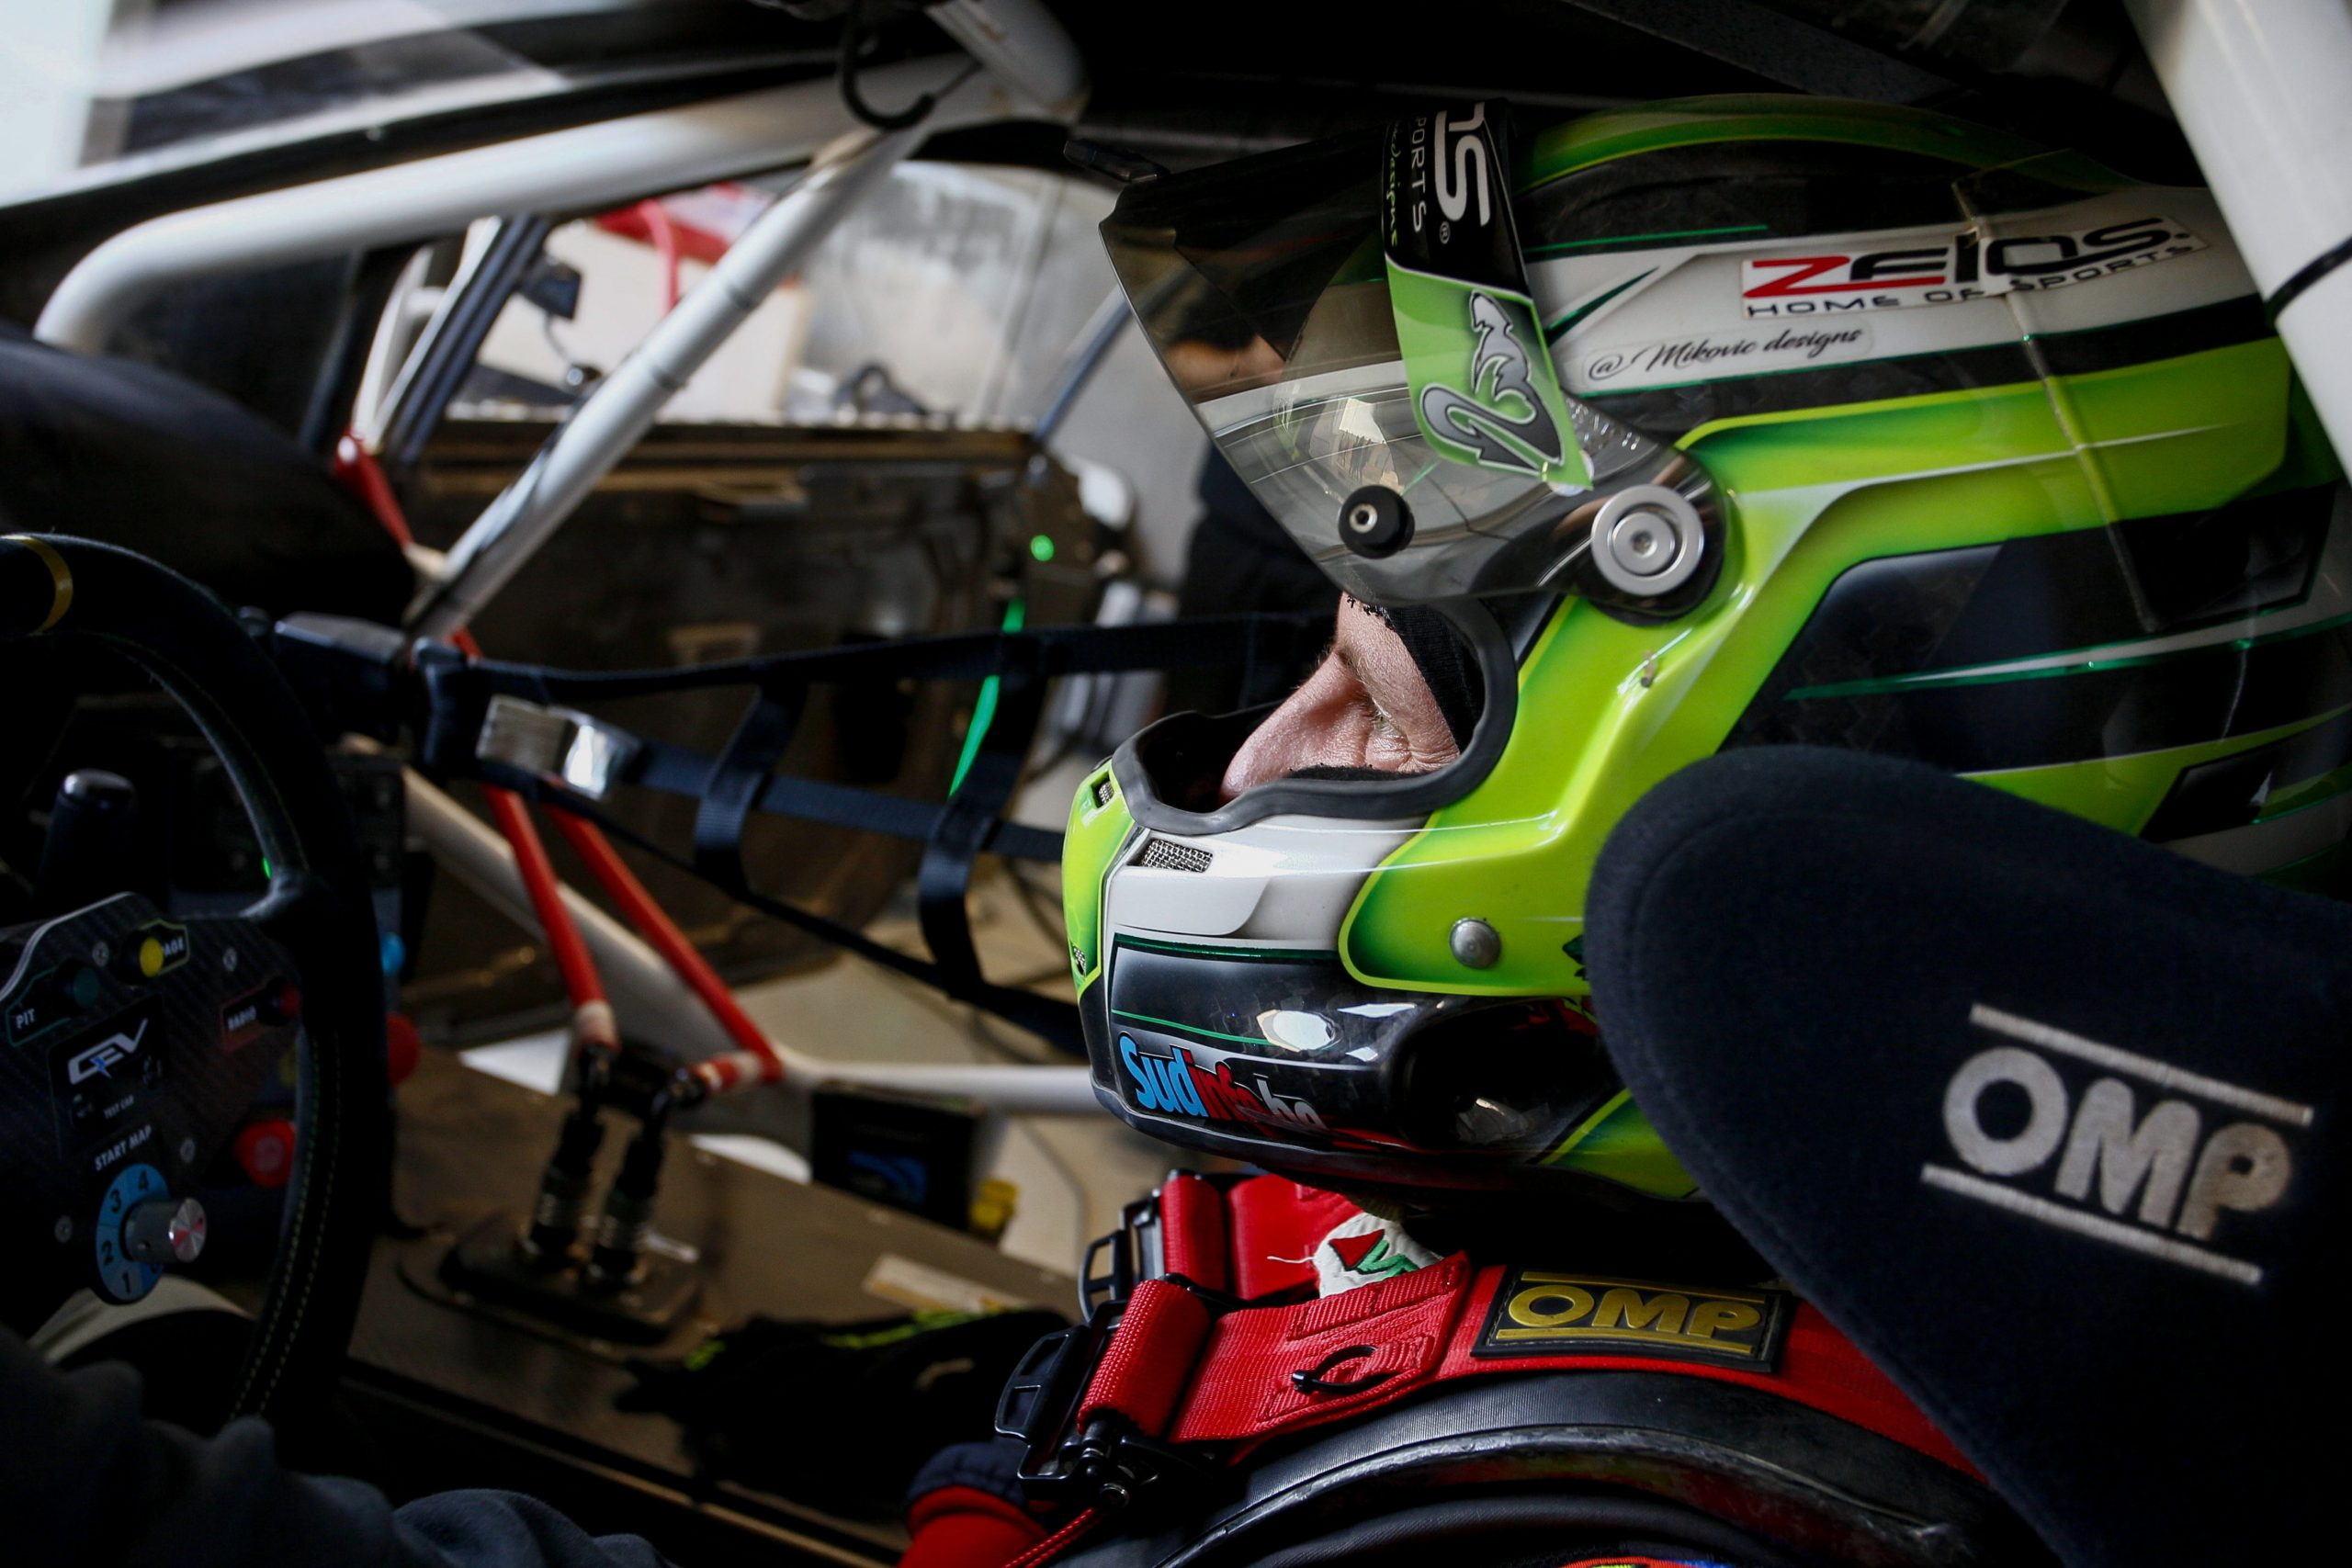 Ex-World RX star De Ridder signs up to RX2e in bid to become first FIA electric rallycross champion, QEV